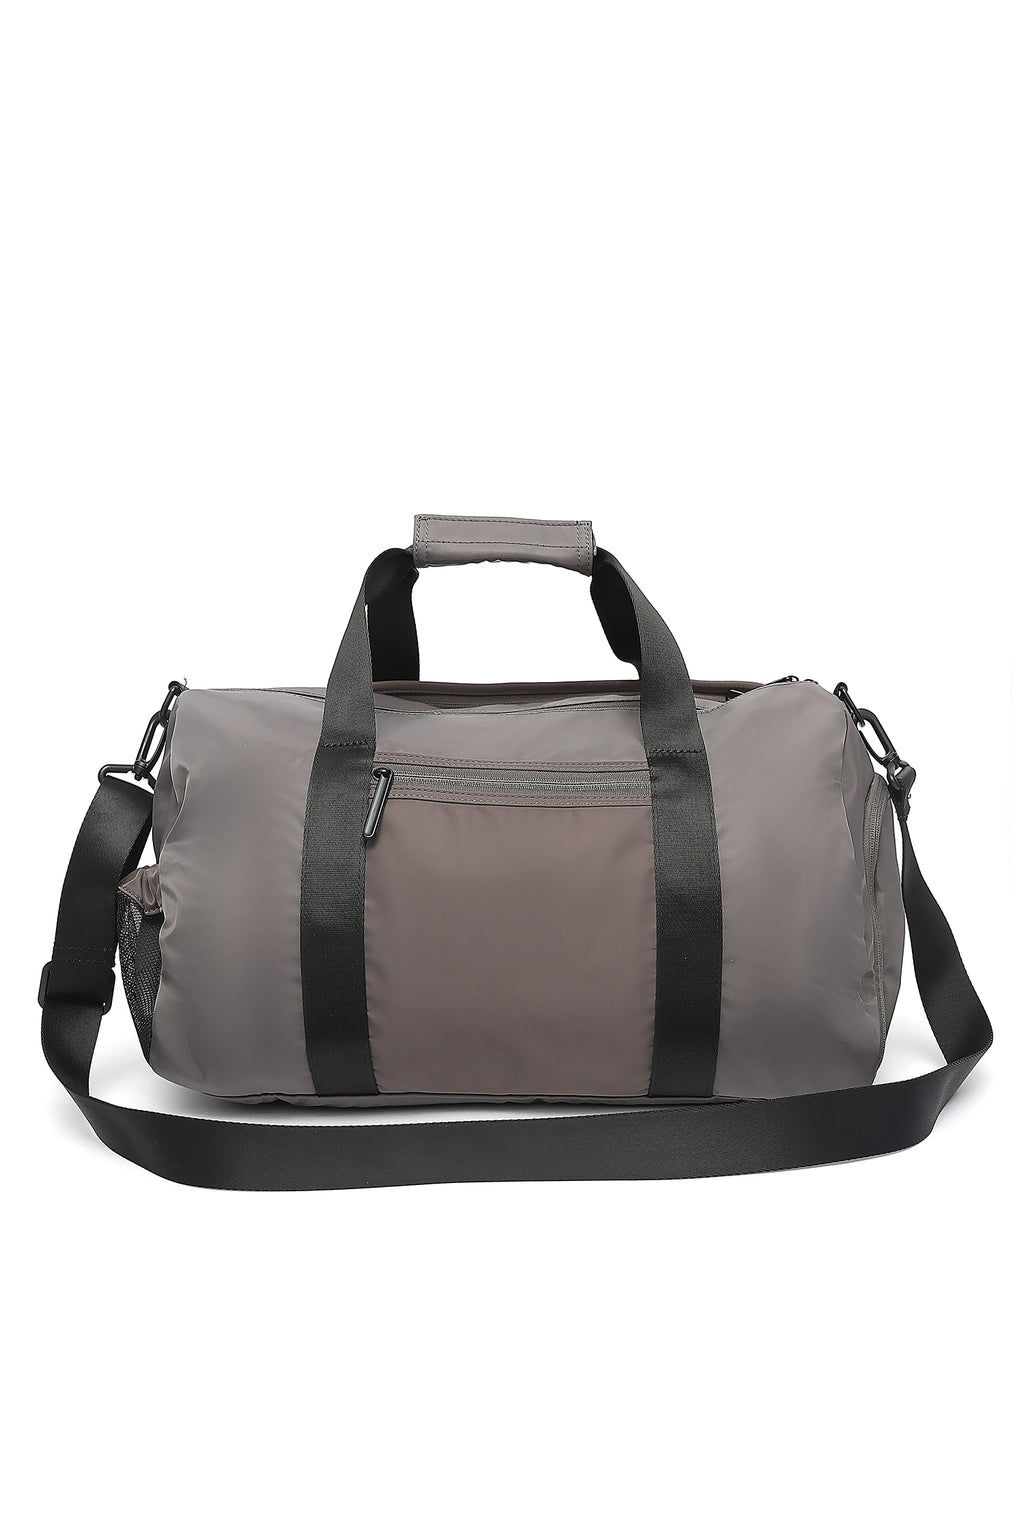 MAGIC DUFFLE-GREY